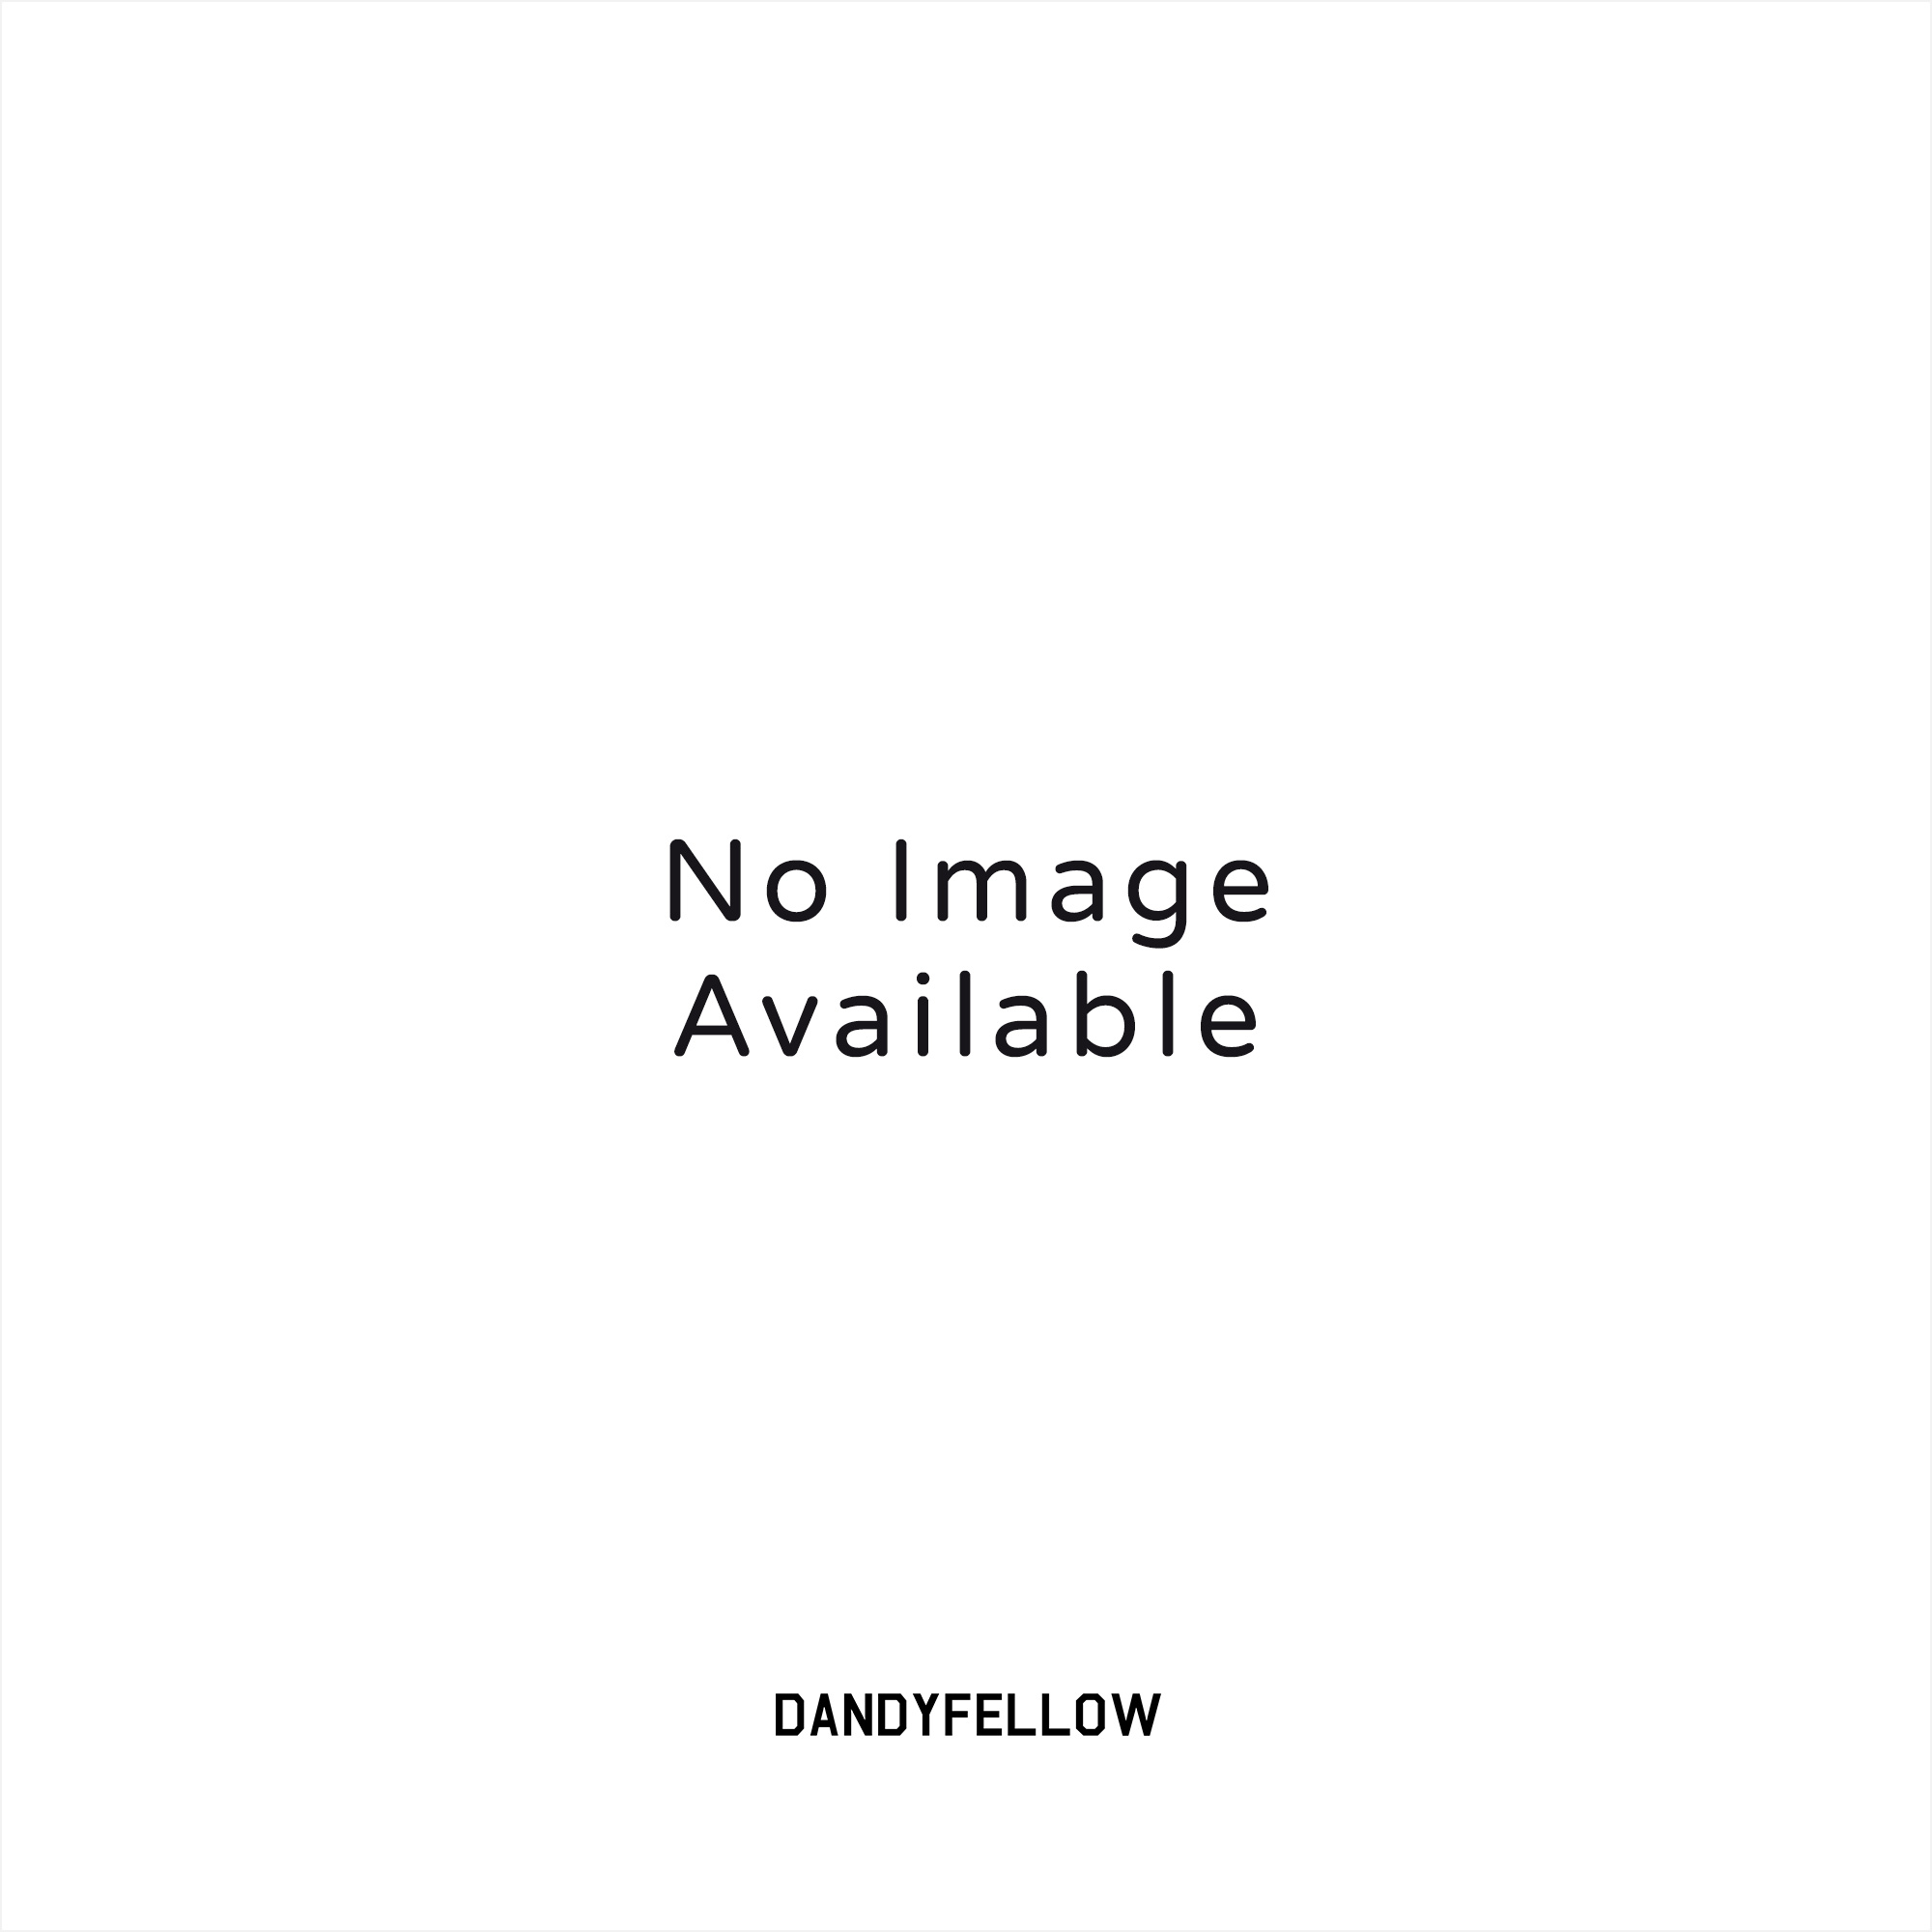 Burlington King Navy Argyle Socks 21070 6120